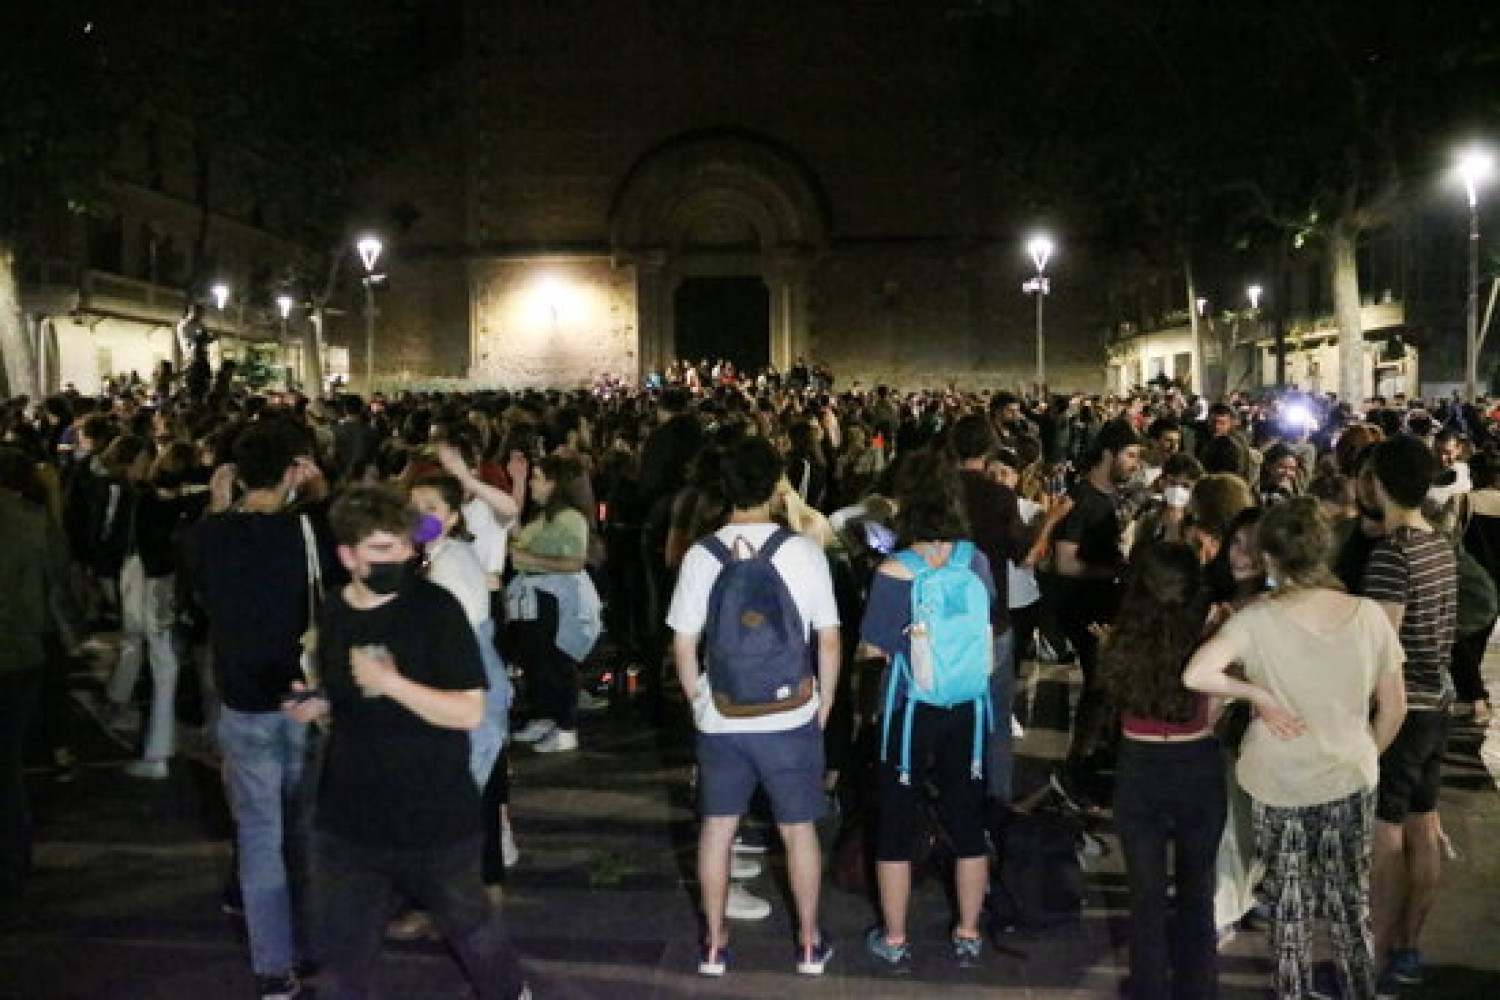 Hundreds of people celebrate the end of the state of alarm in Barcelona's Plaça de la Virreina, in Gràcia, on May 9, 2021 (by Sílvia Jardí)